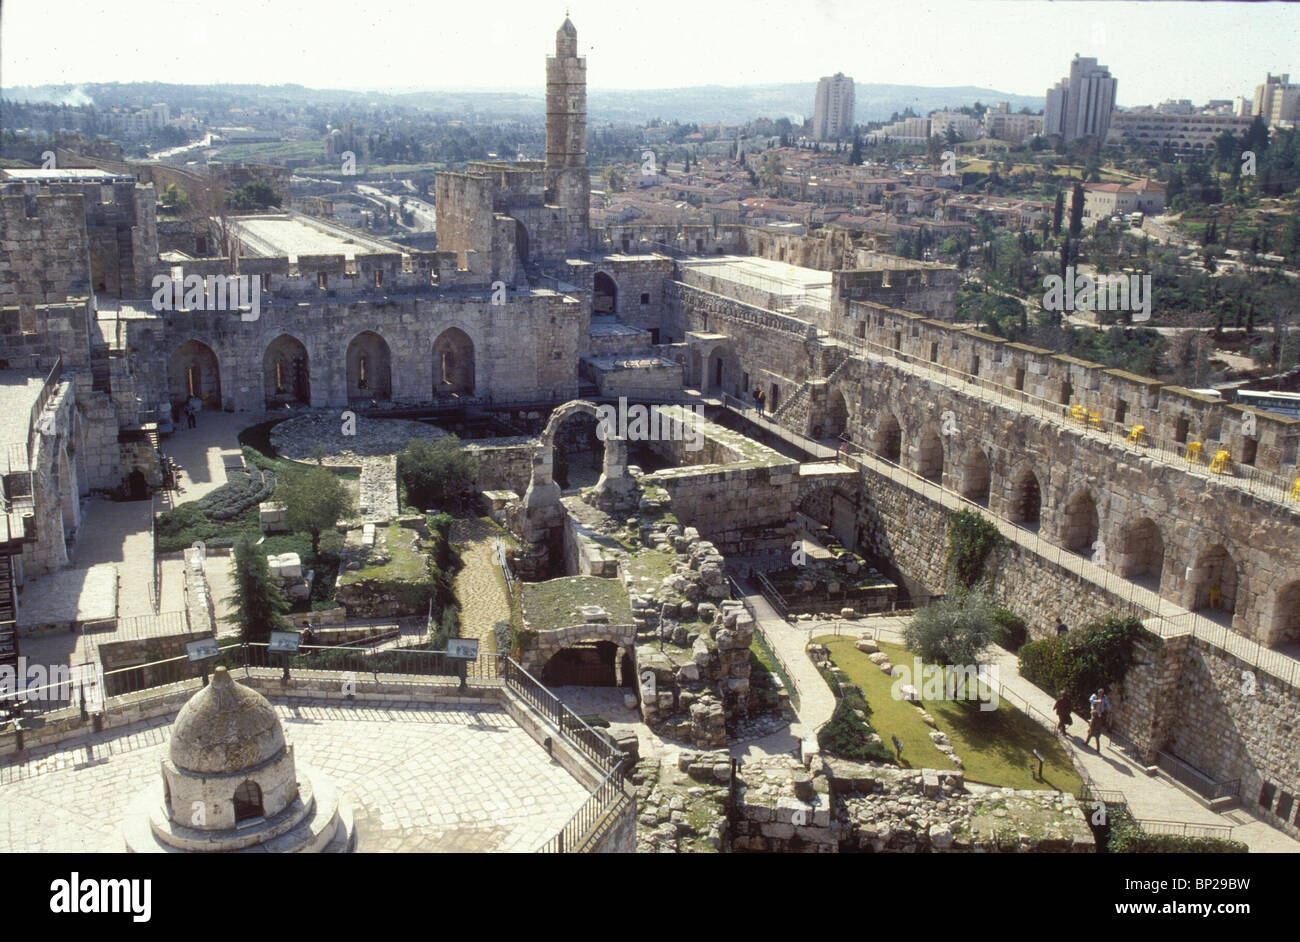 2877. THE JERUSALEM CITADEL, GENERAL VIEW ON THE CRUSADER REMAINS (RIGHT), AND THE TURKISH MINARET (CENTER) - Stock Image